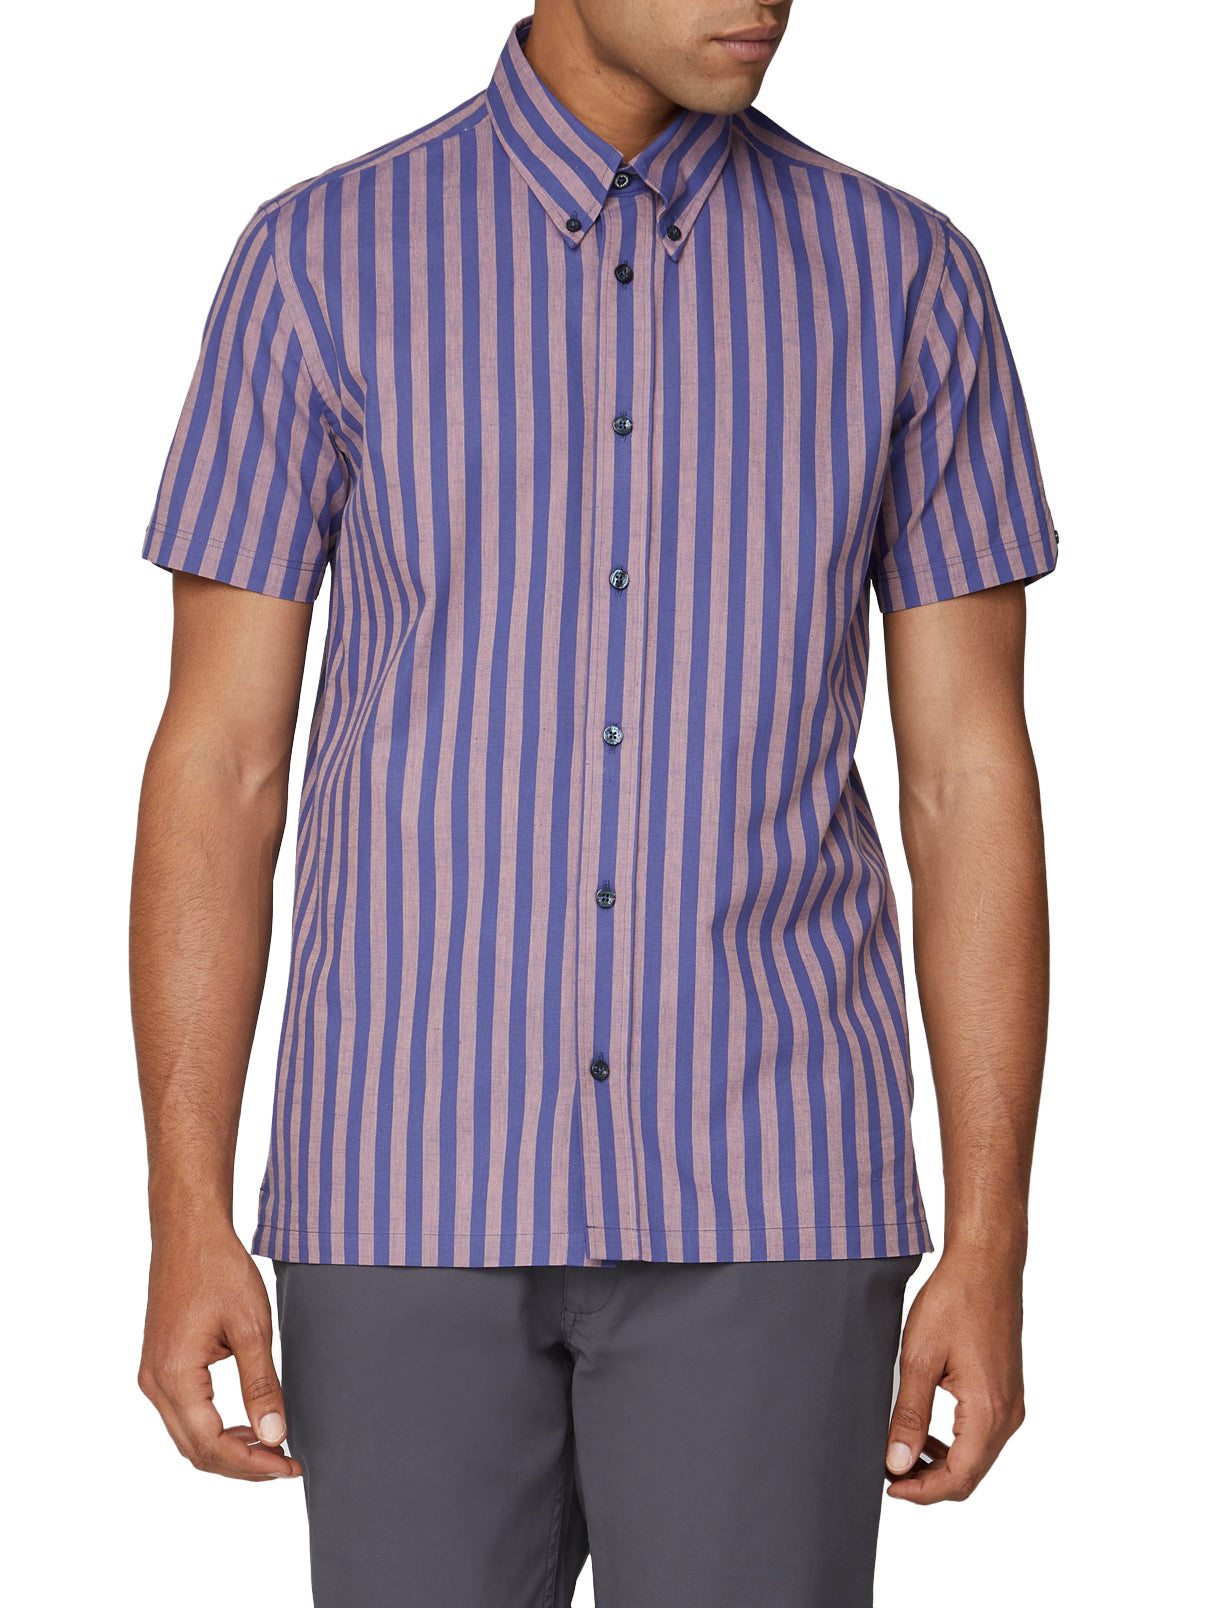 Short Sleeve Vertical Slub Stripe Shirt - Cobalt